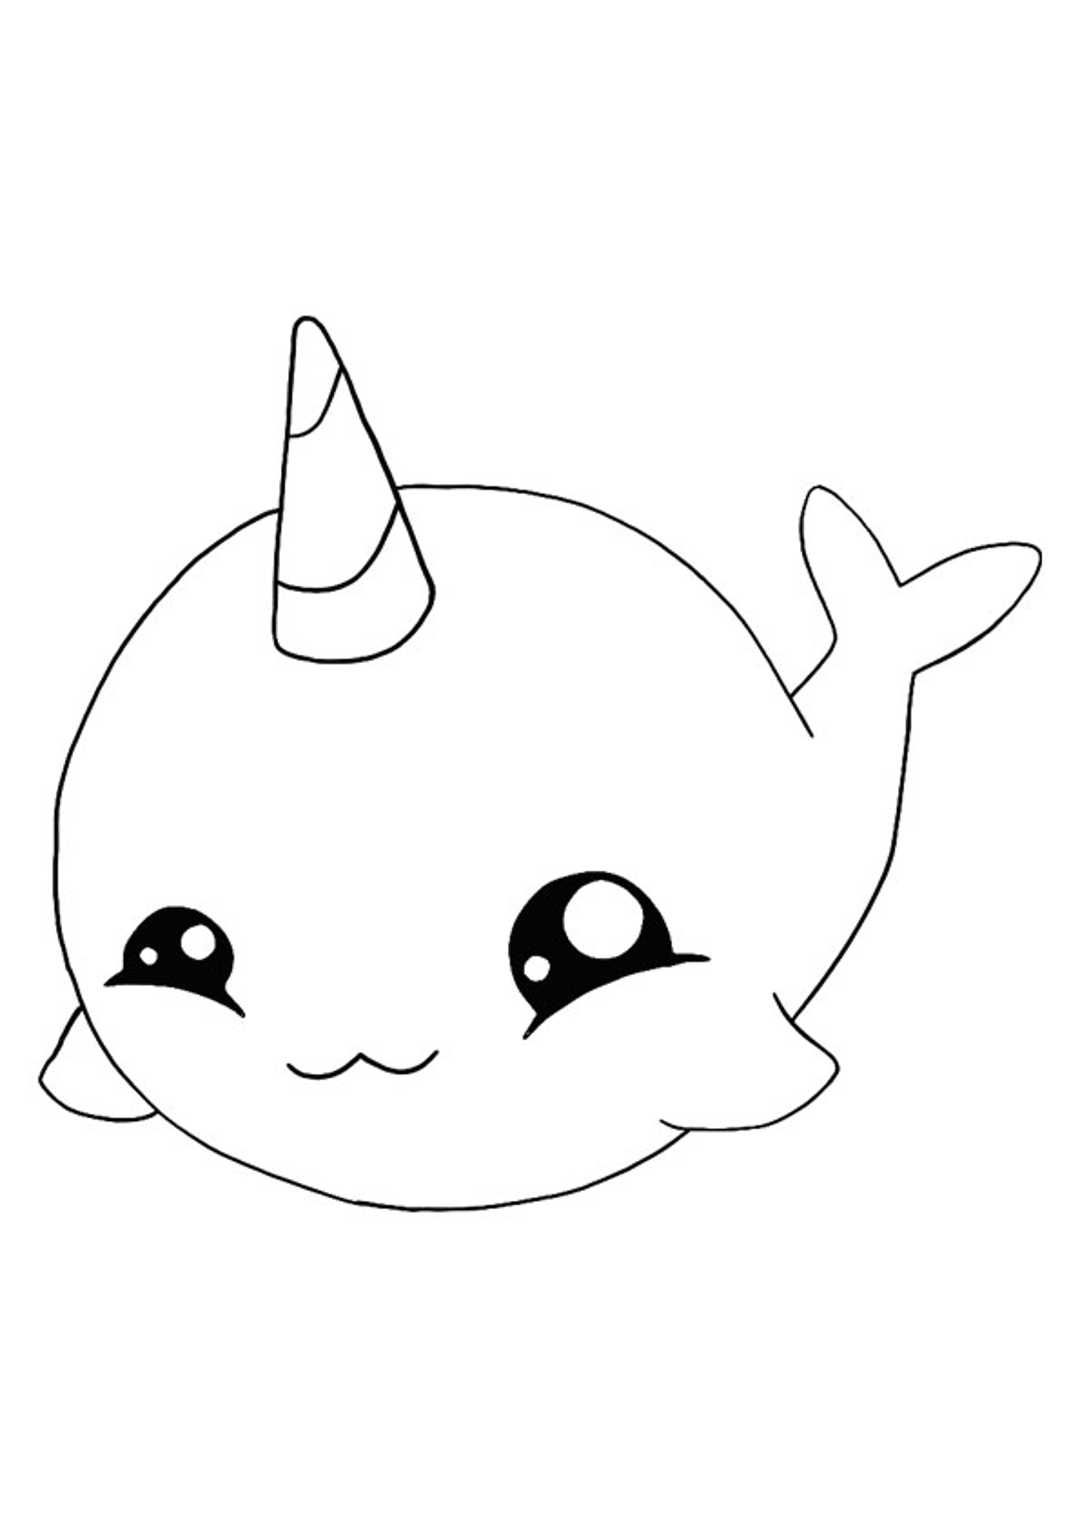 Coloring Page Kids Unicorn Coloring Pages Emoji Coloring Pages Cute Coloring Pages